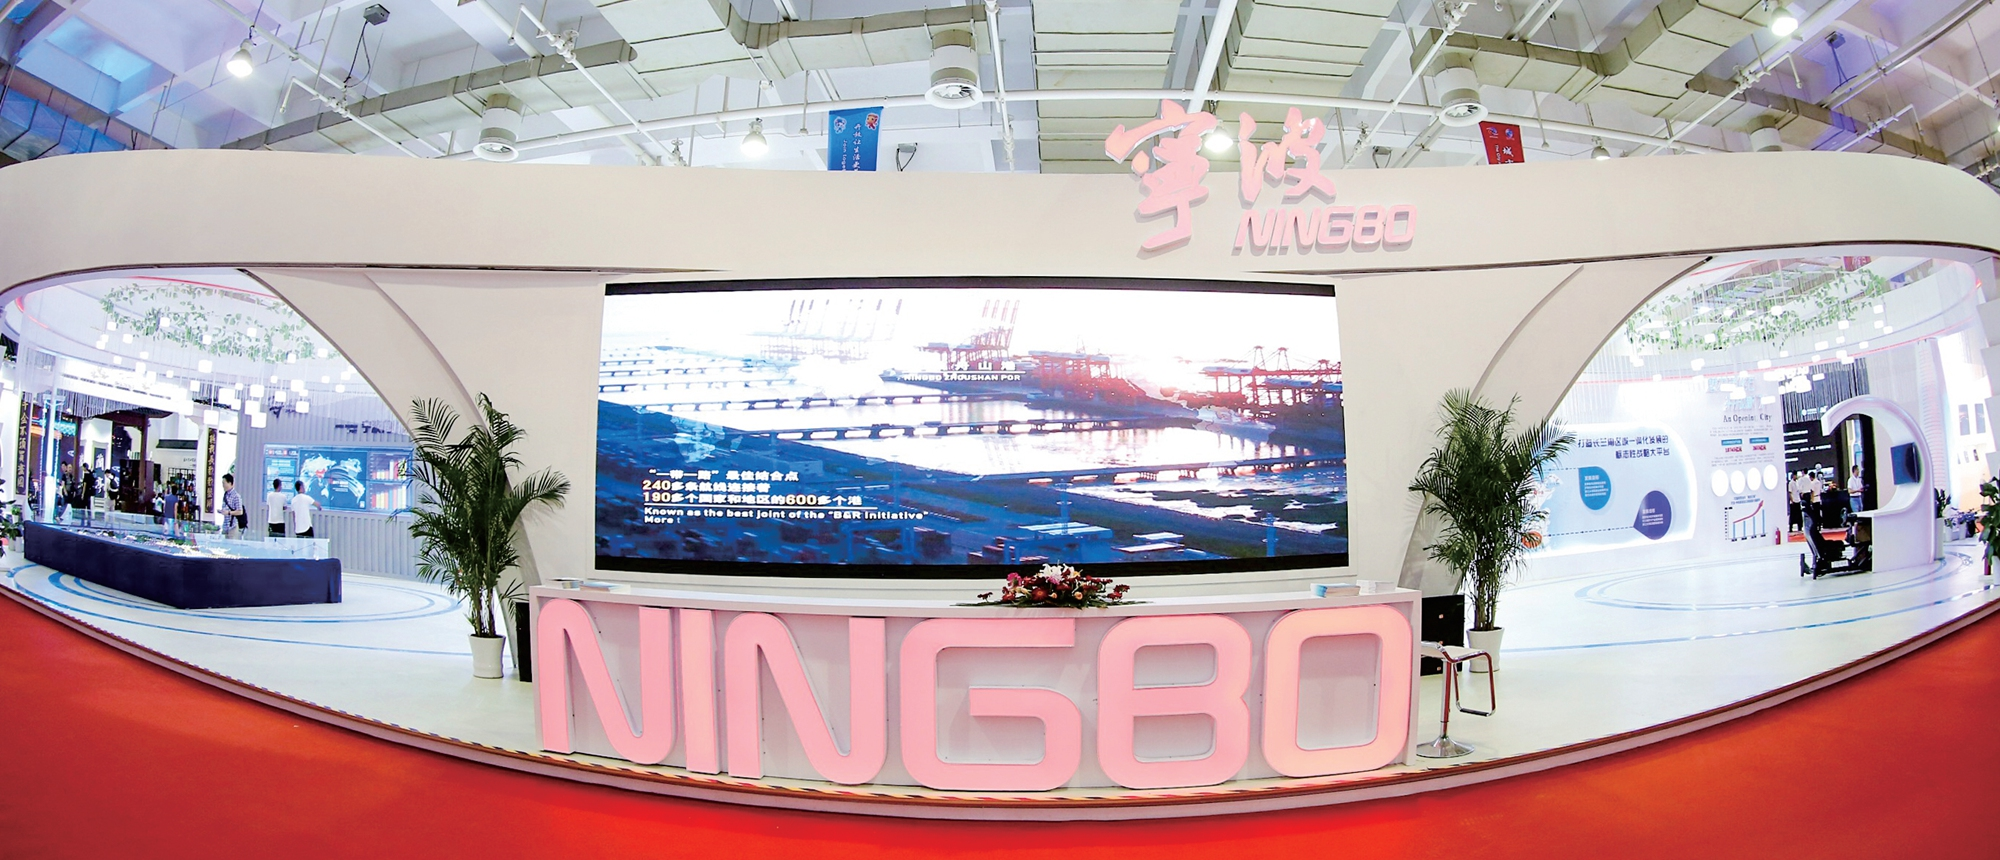 The Belt and Road Exhibition Area - Ningbo Pavilion in Ningbo, East China's Zhejiang Province Photo: Courtesy of the publicity department of Ningbo